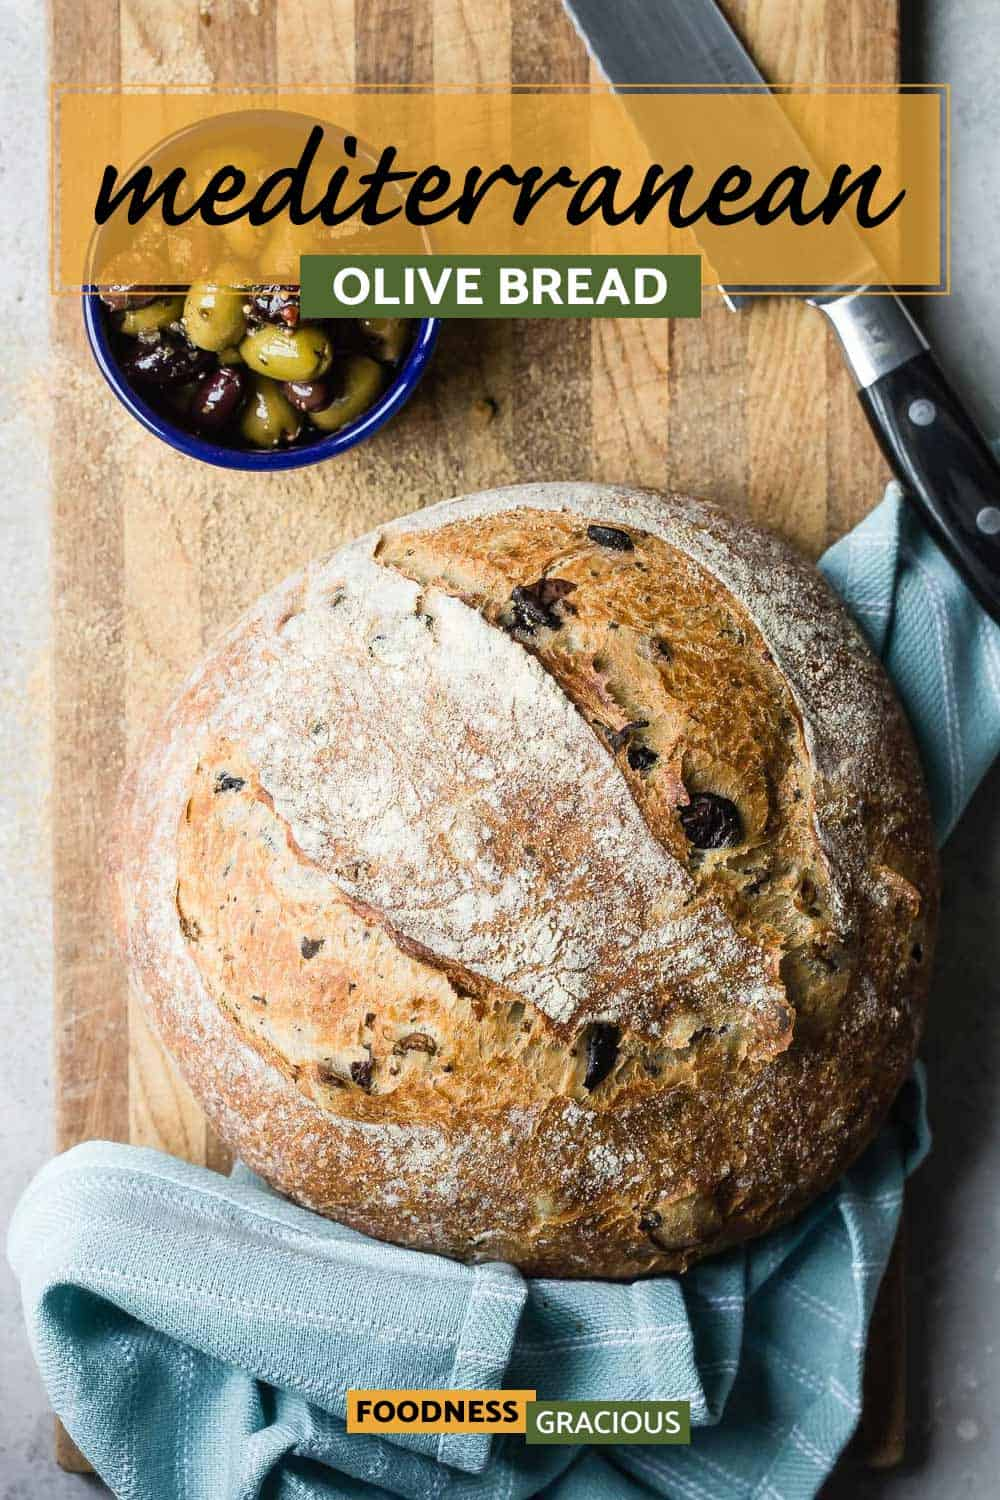 olive bread on a cutting board